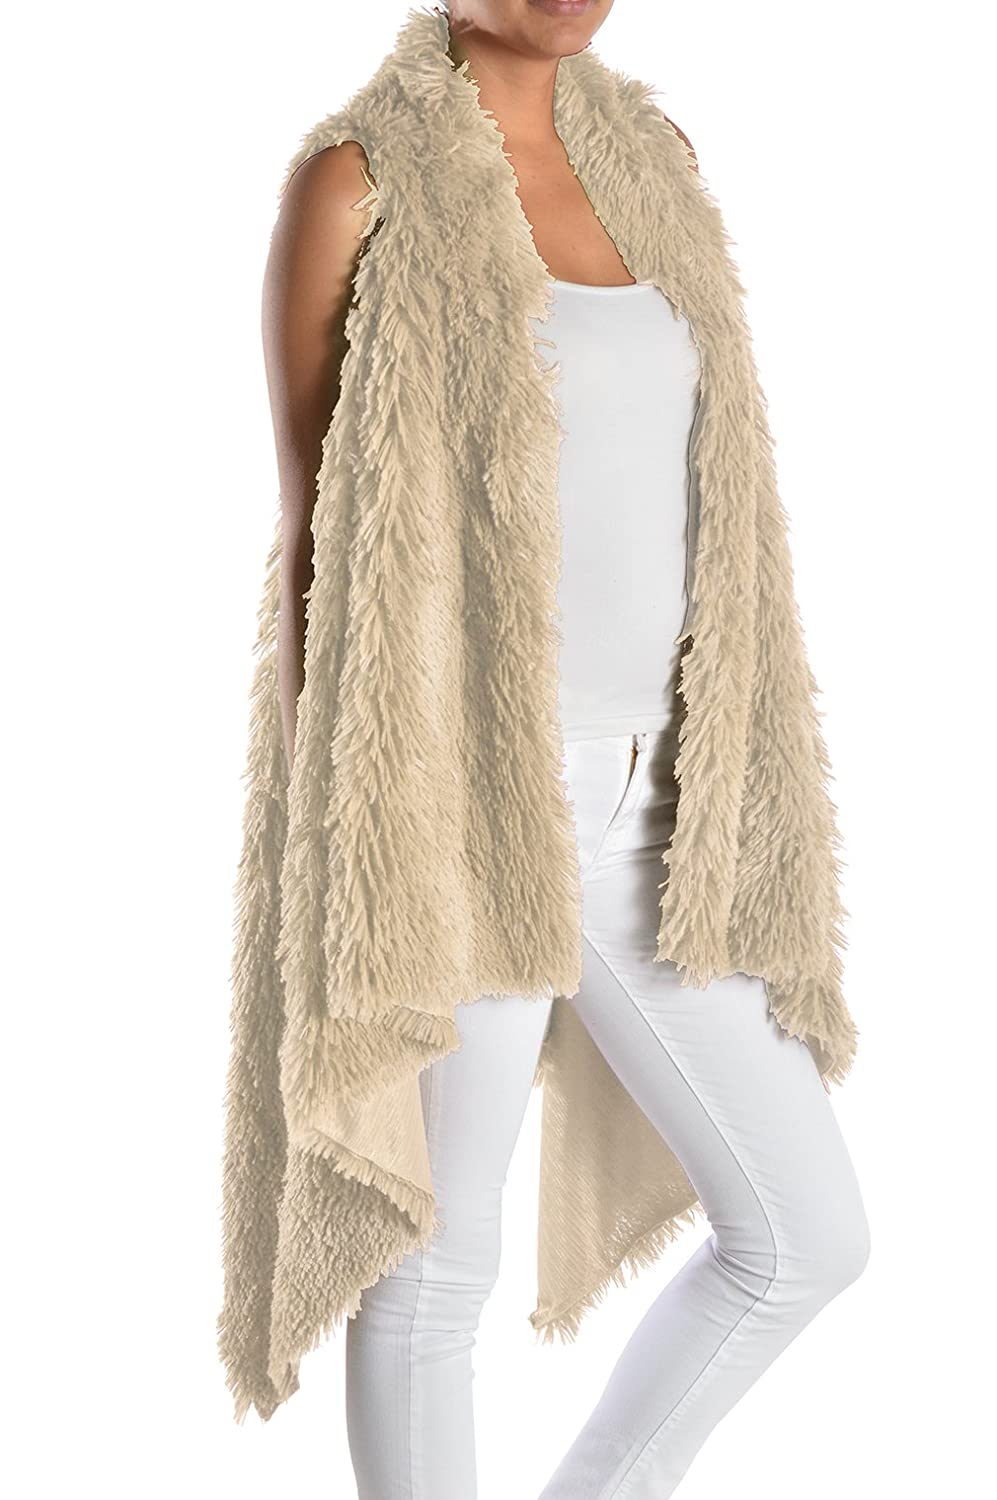 Triple9shop Women's 100% Warm Faux Fur Long Vest Fluffy Cardigan ...